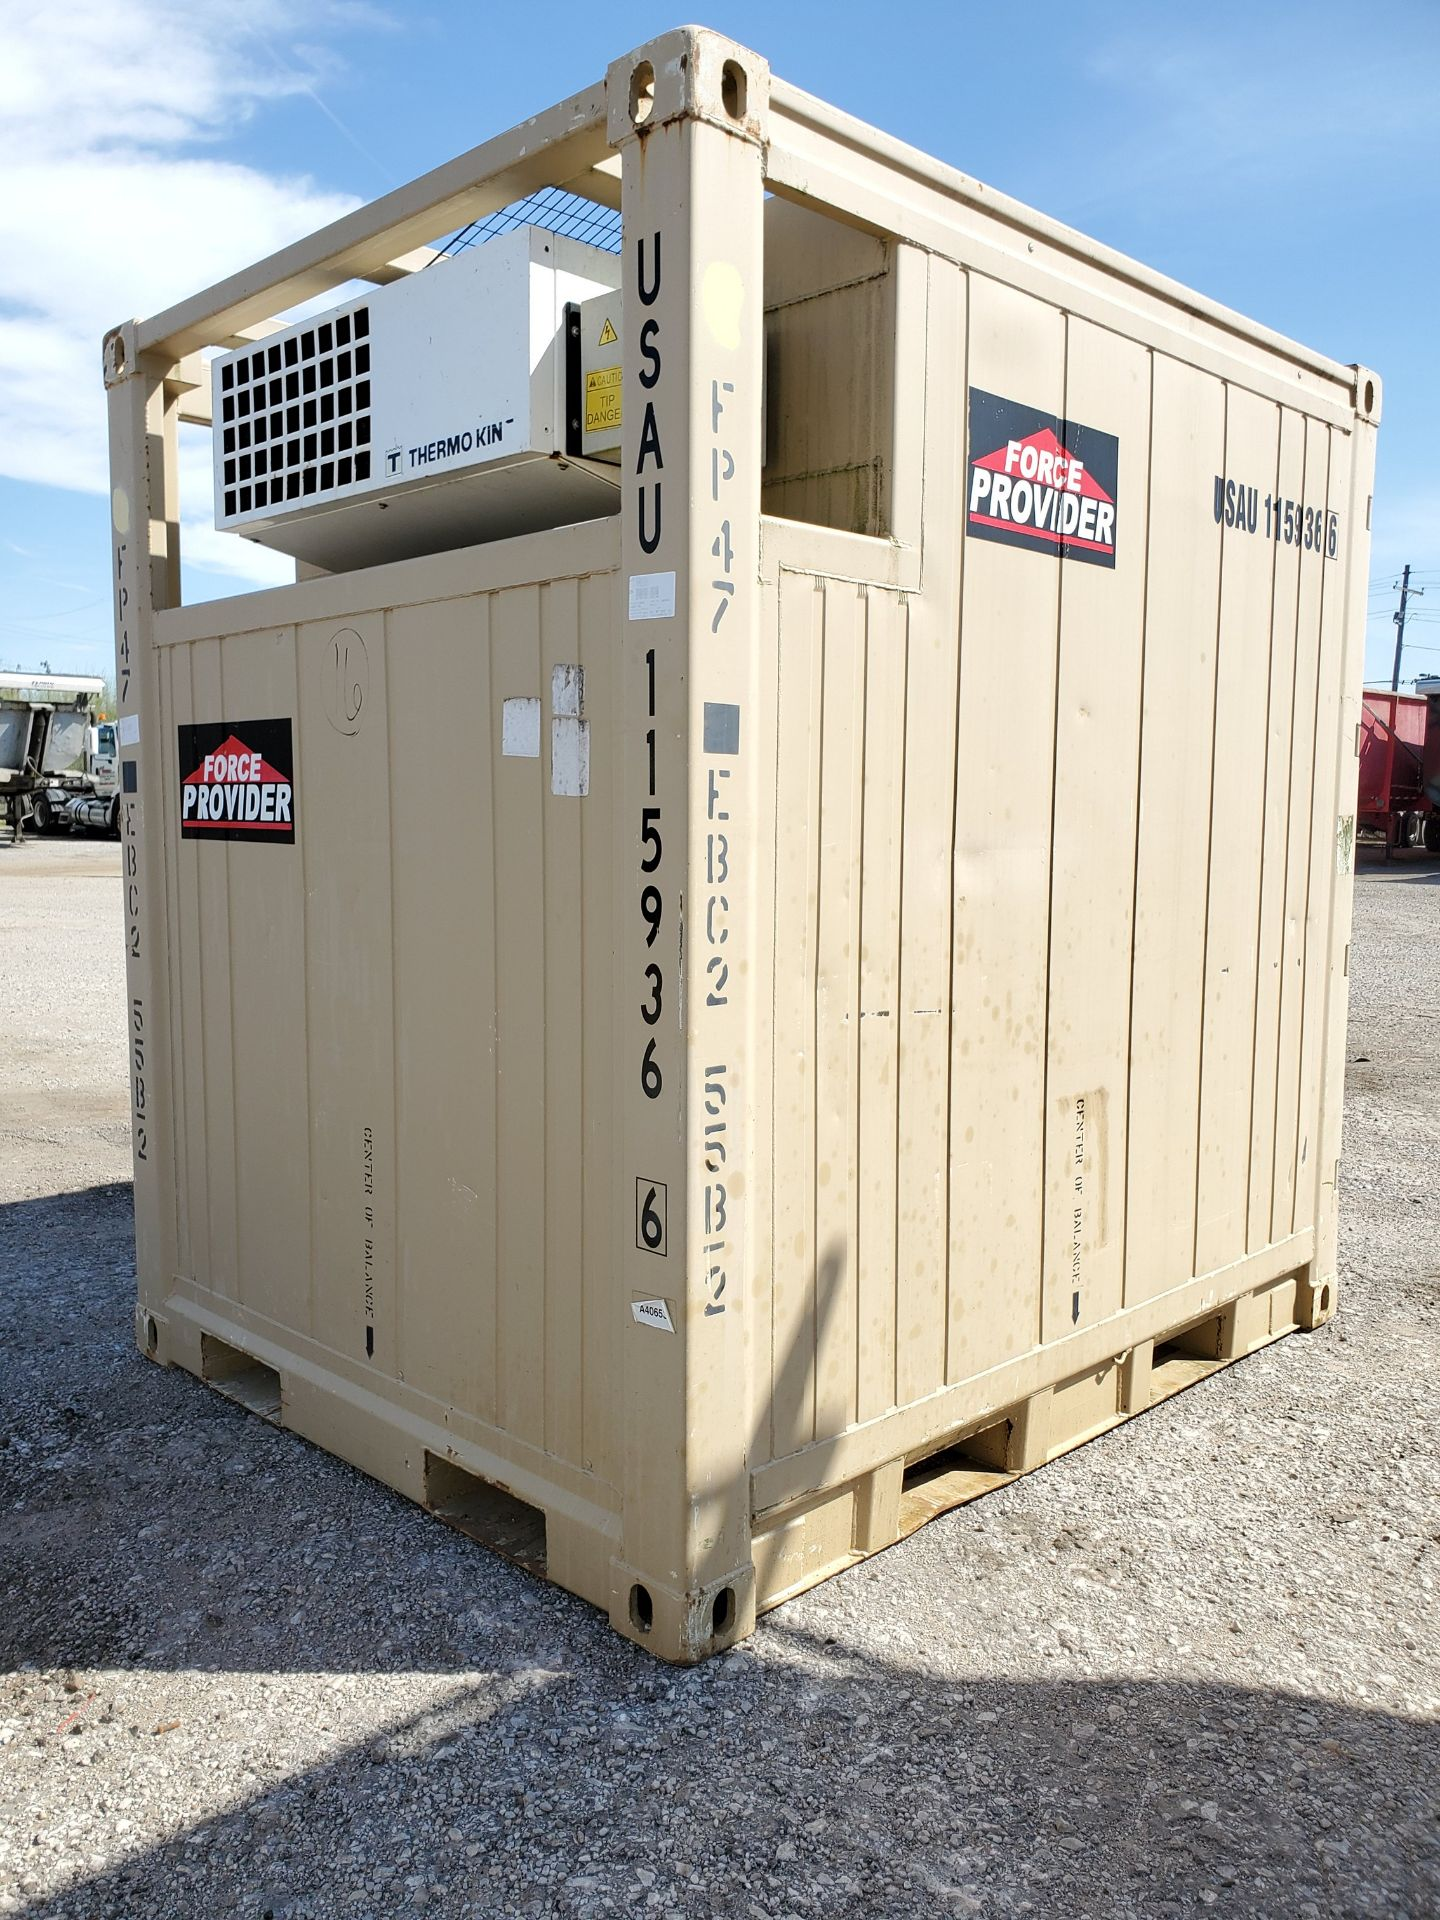 Lot 102 - 2009 FORCE PROVIDER REFRIGERATED CONTAINER 8' X 8' X 6.5', LESS THAN 200 HOURS